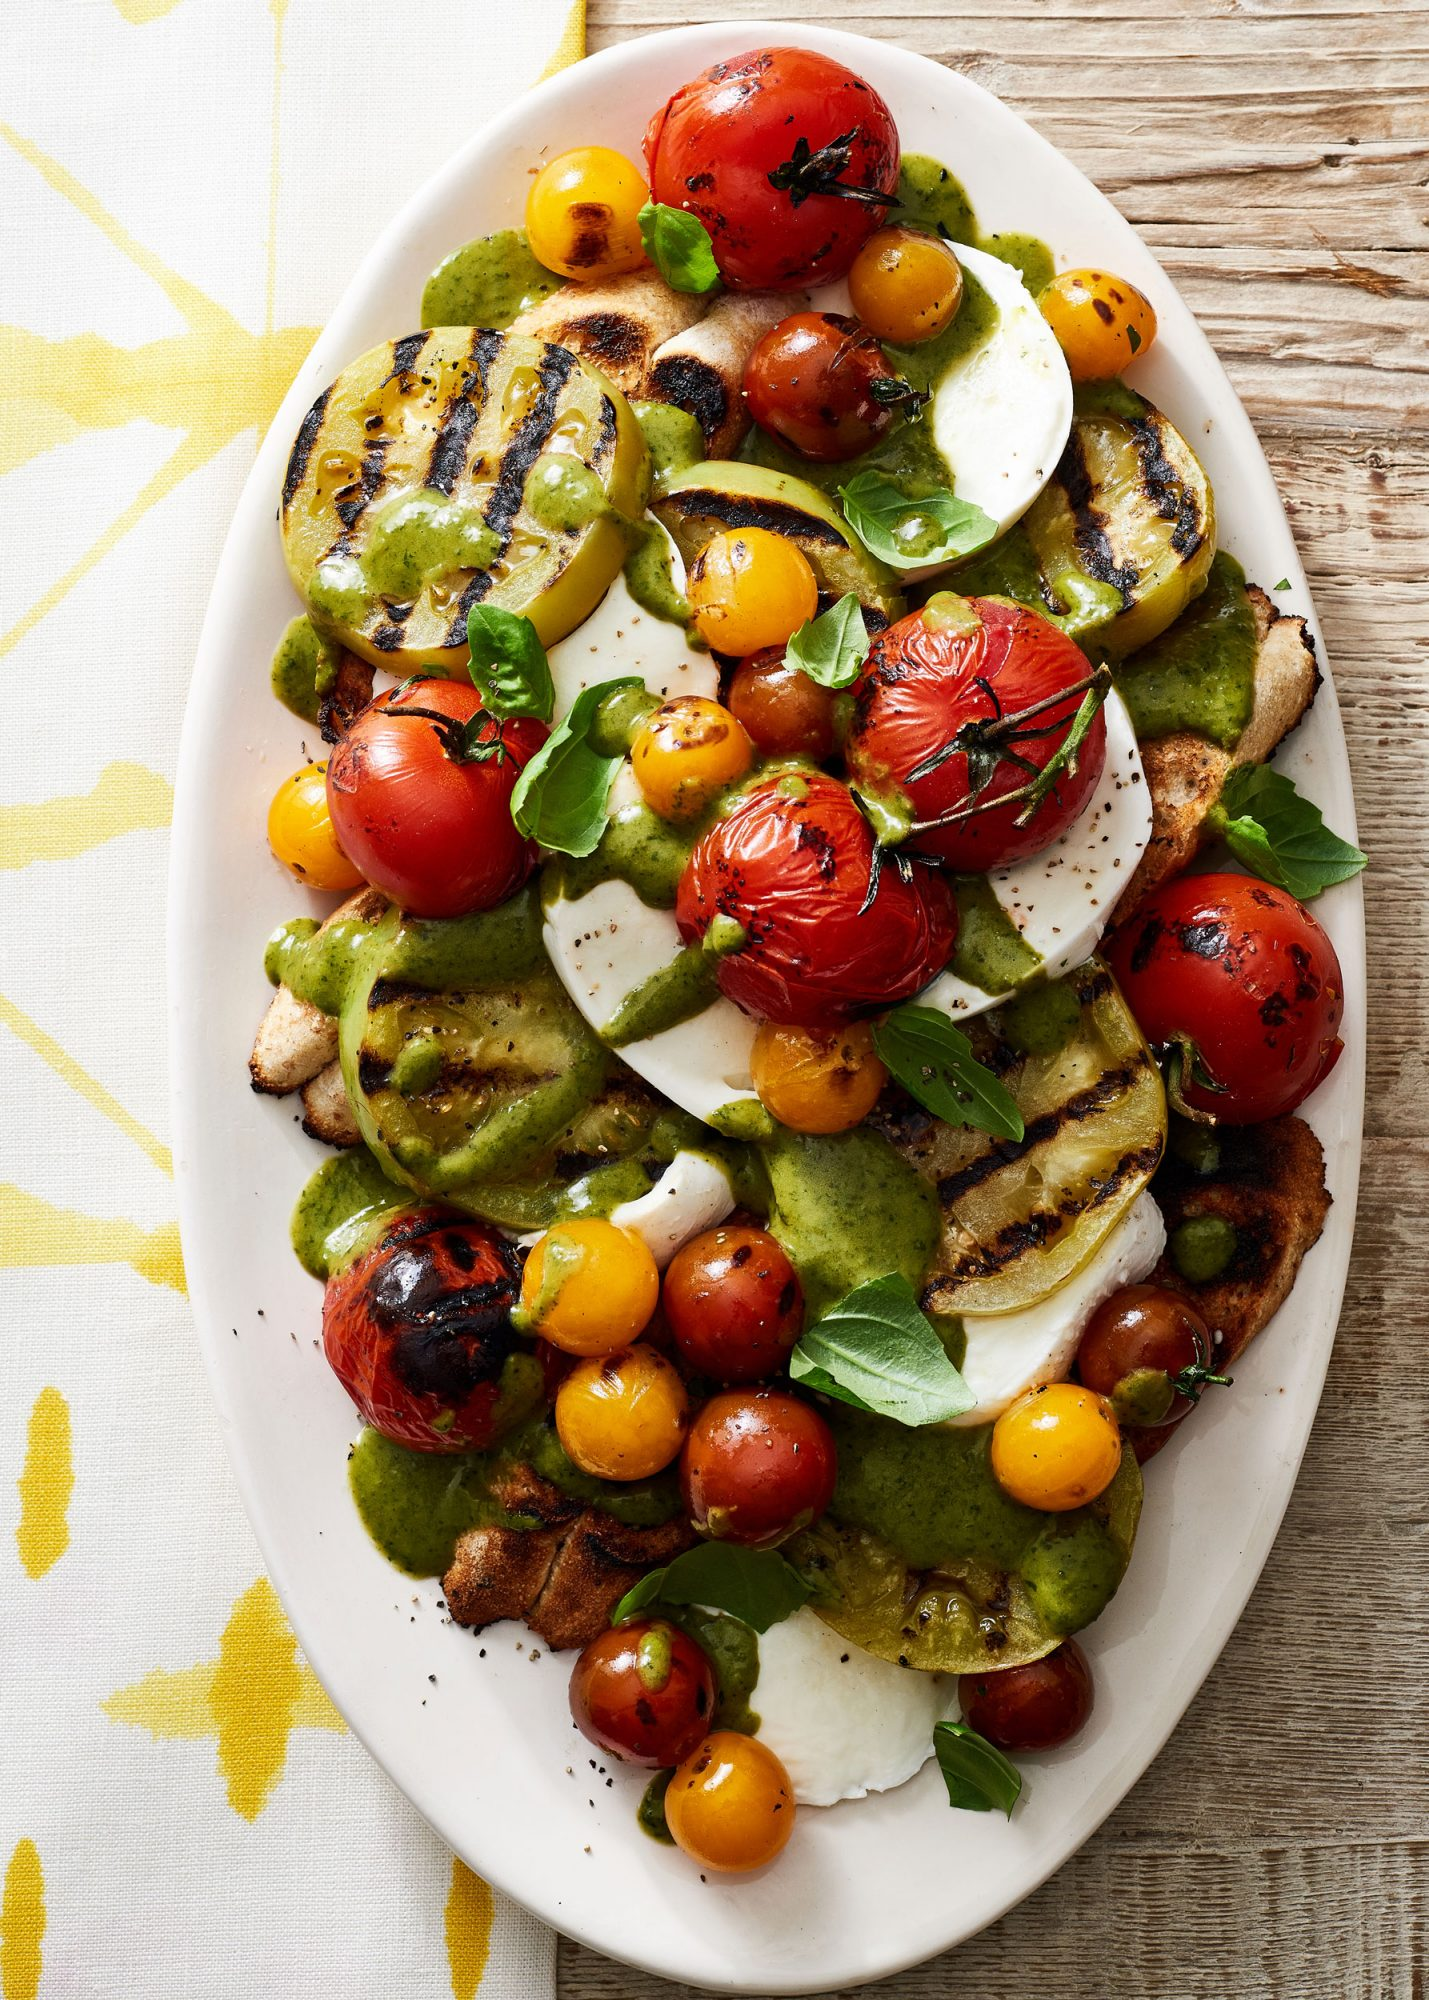 Grilled Tomato Salad with Creamy Basil Dressing